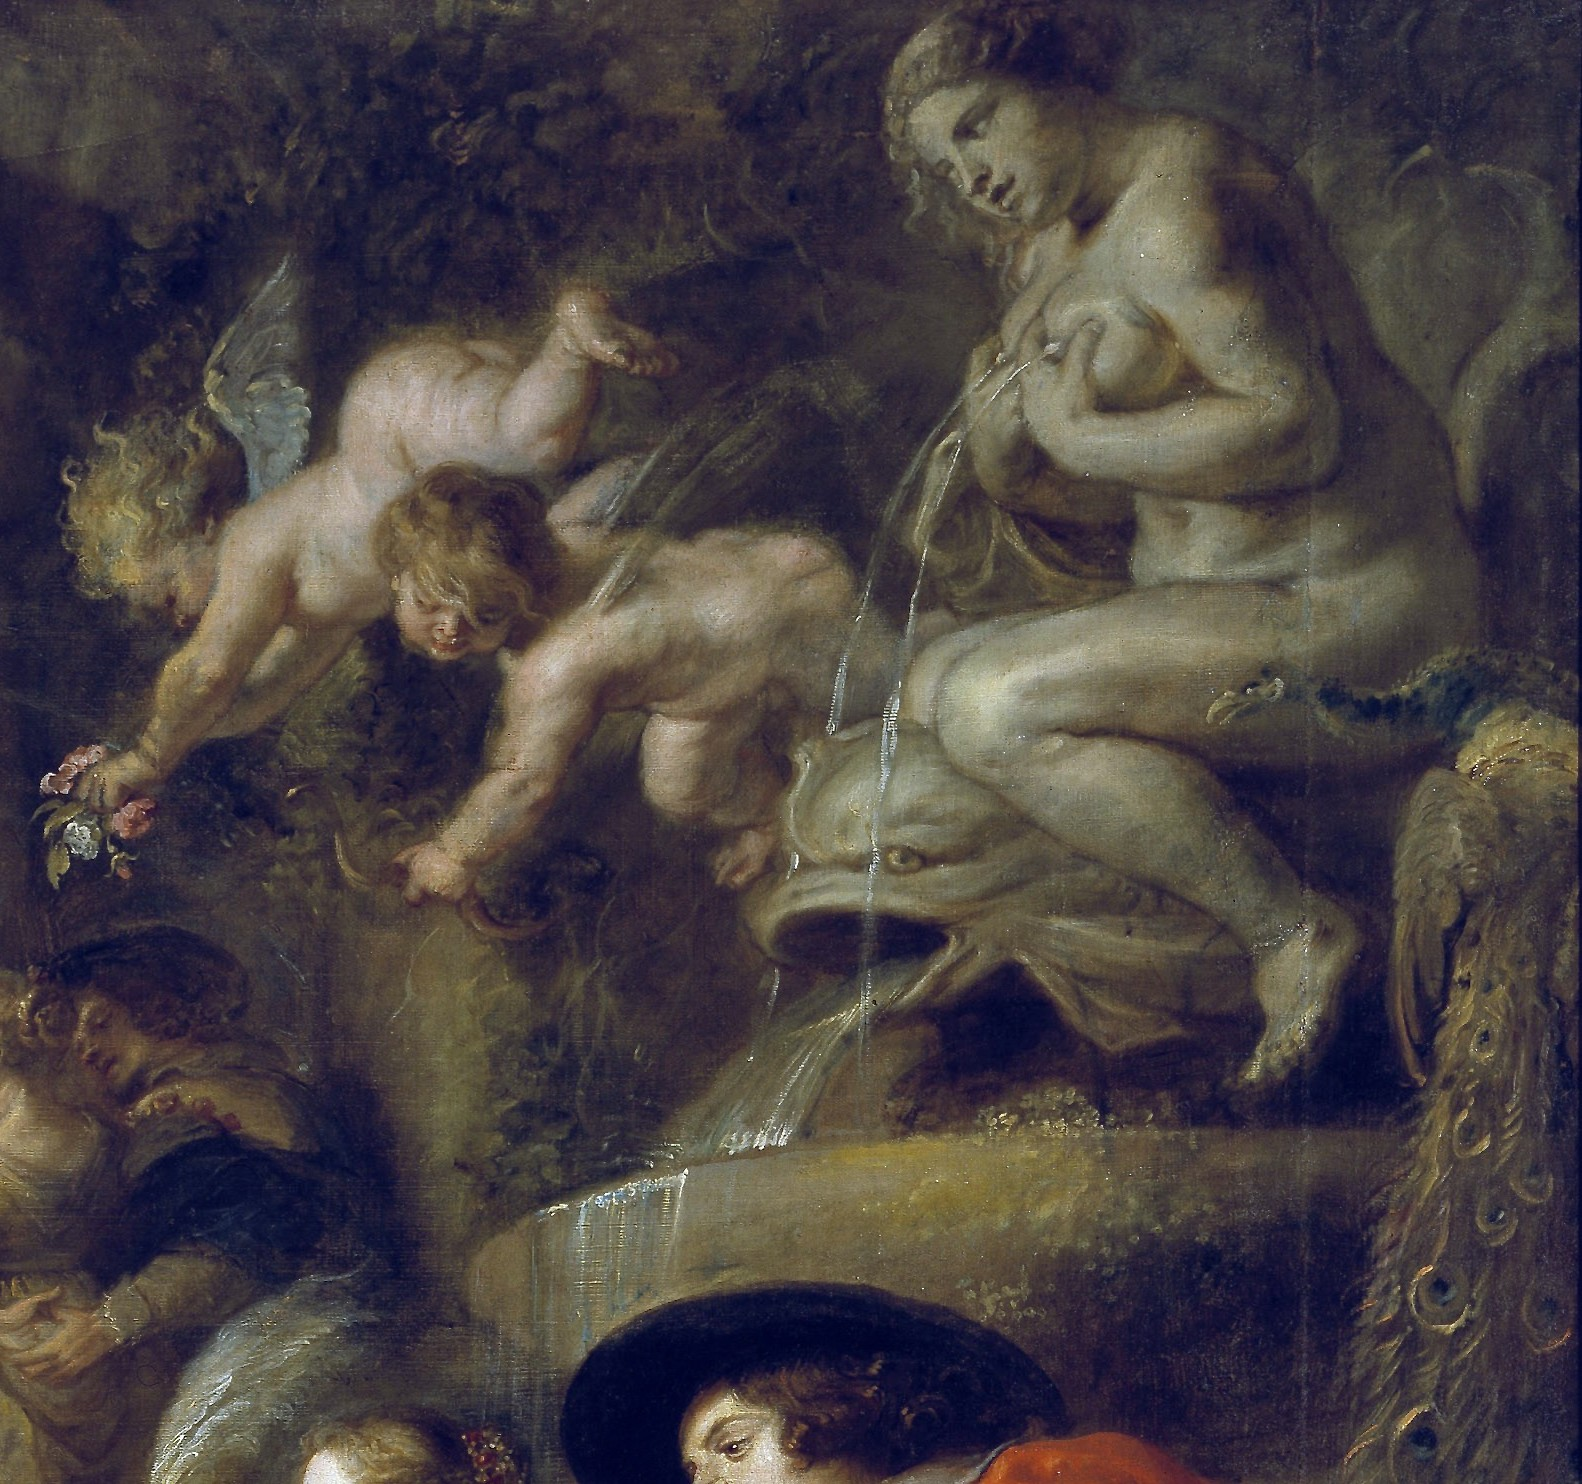 The Garden of Love, by Peter Paul Rubens